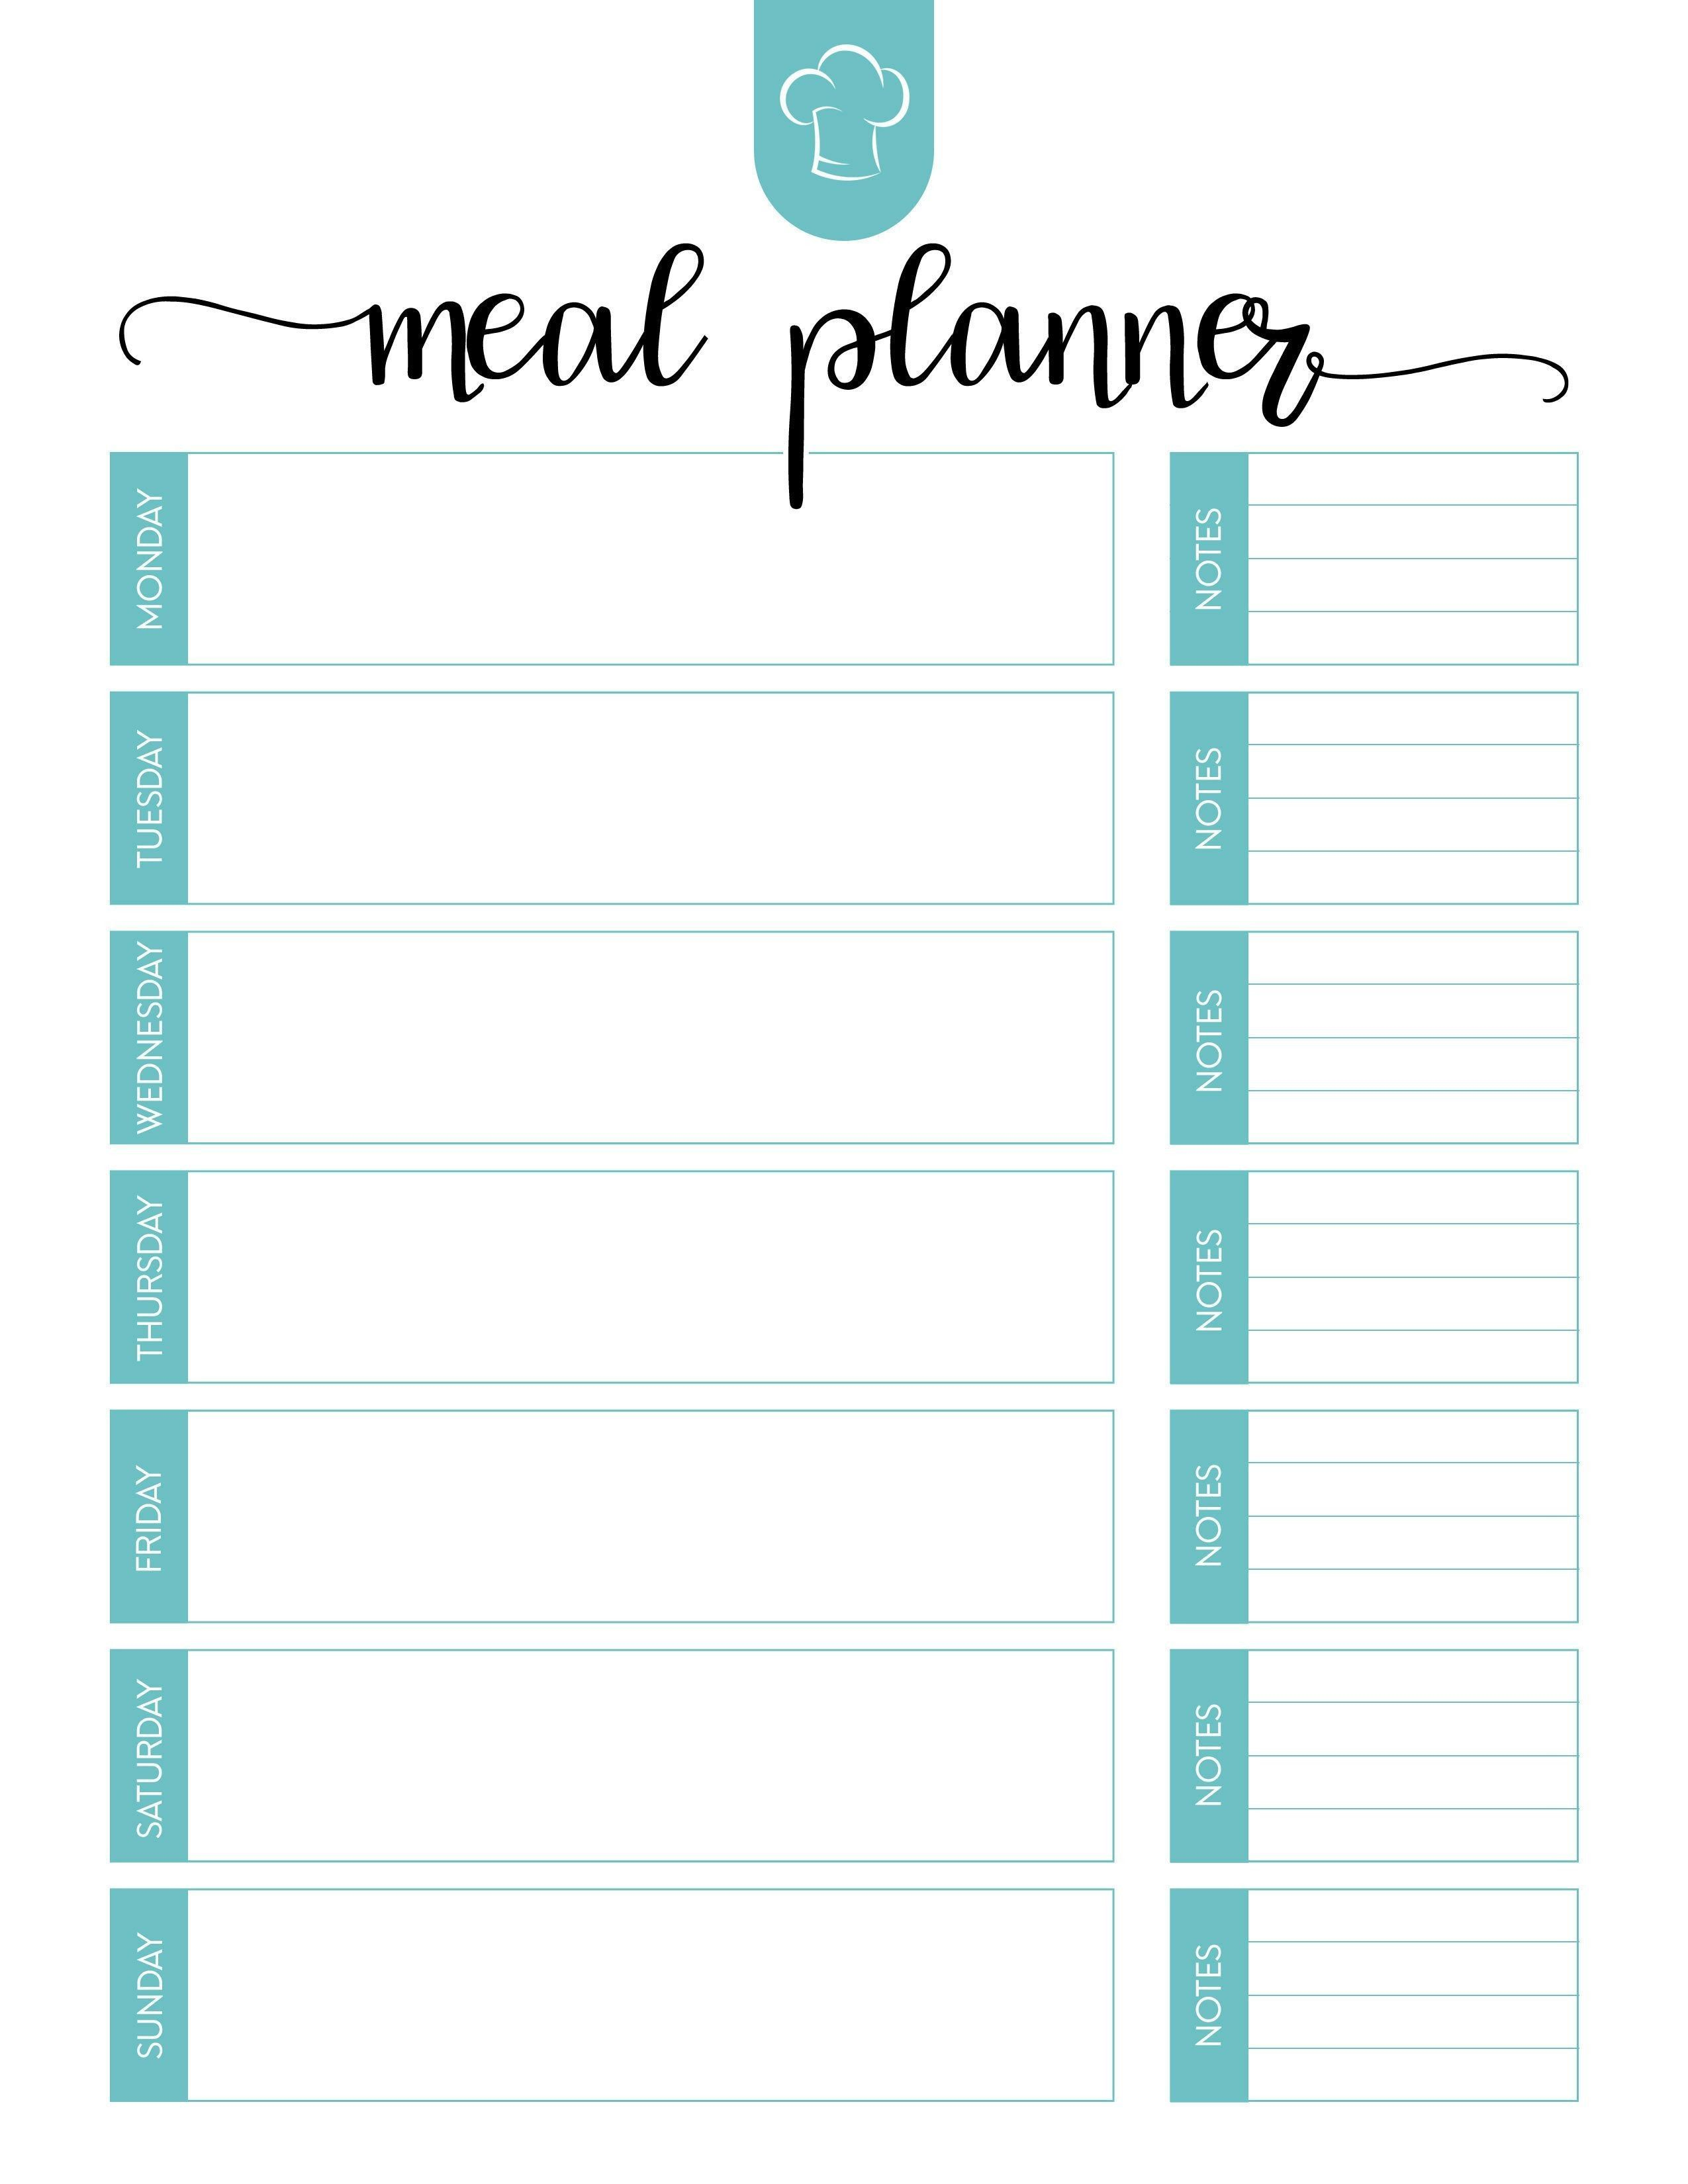 002 Unique Free Food Planner Template Highest Quality  Printable Weekly Meal With Grocery List Diary Download Editable WordFull